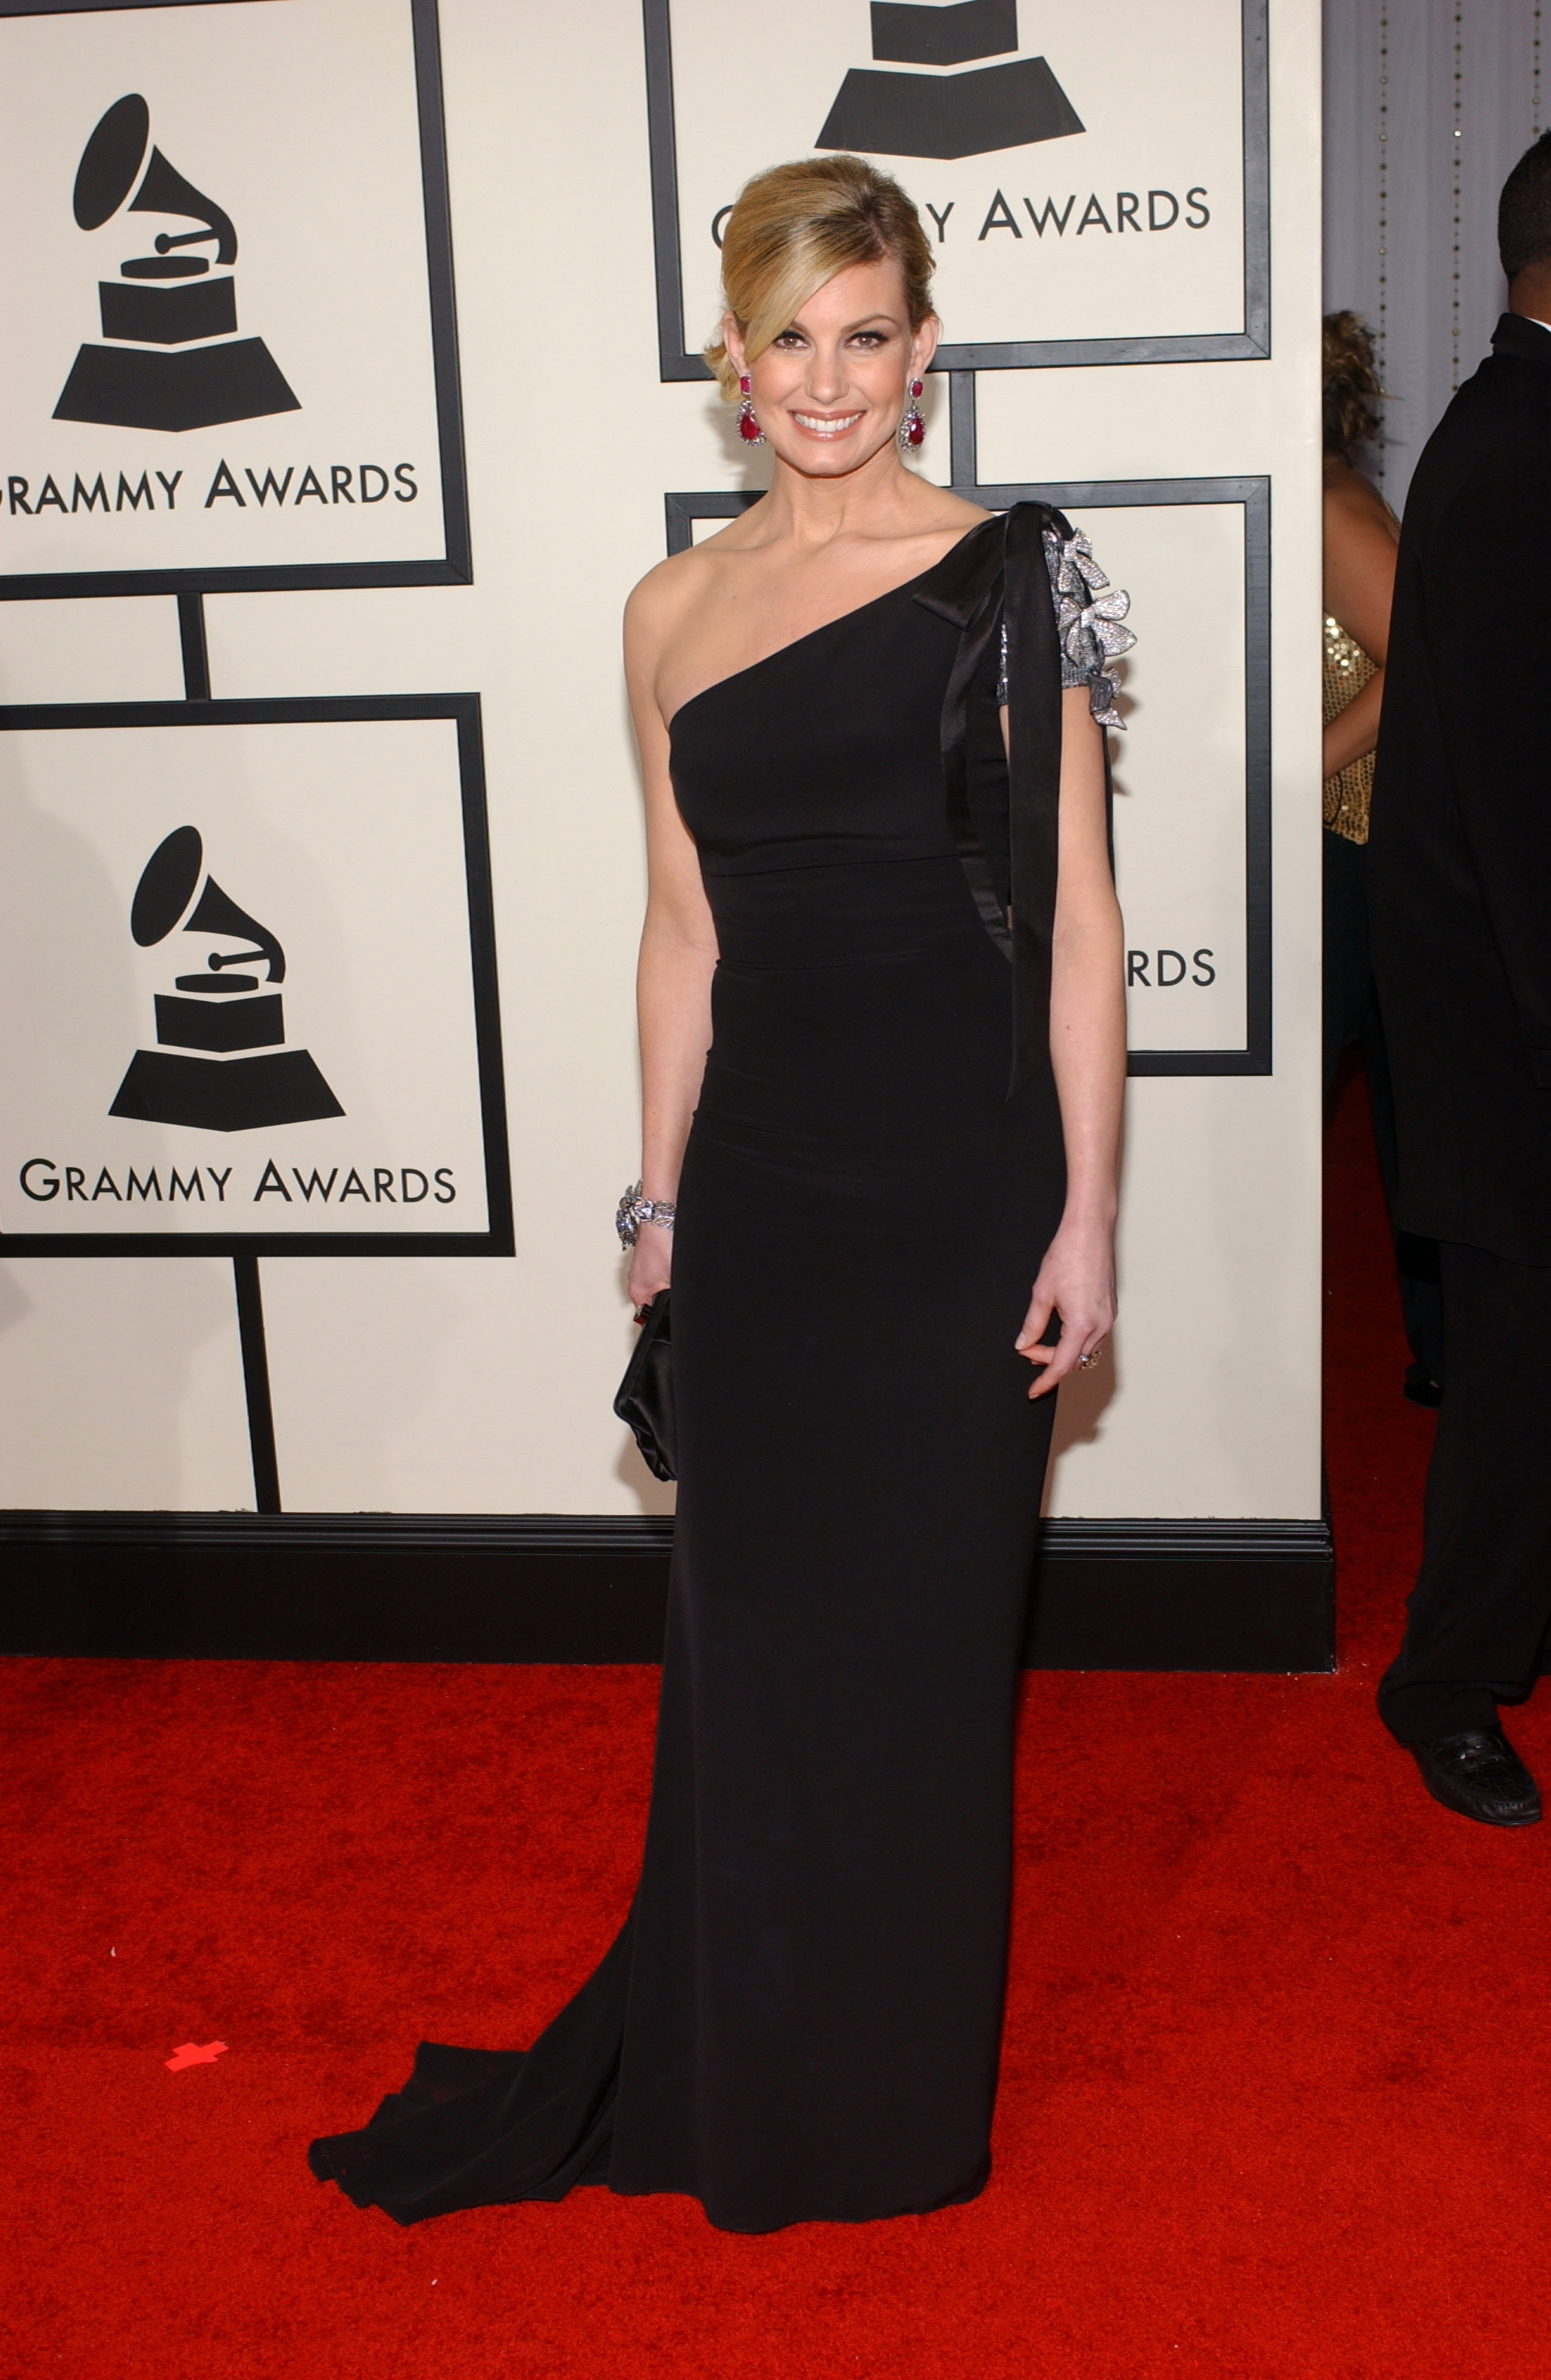 Faith Hill attends the 50th Annual Grammy Awards at Staples Center in Los Angeles on Feb. 10, 2008.